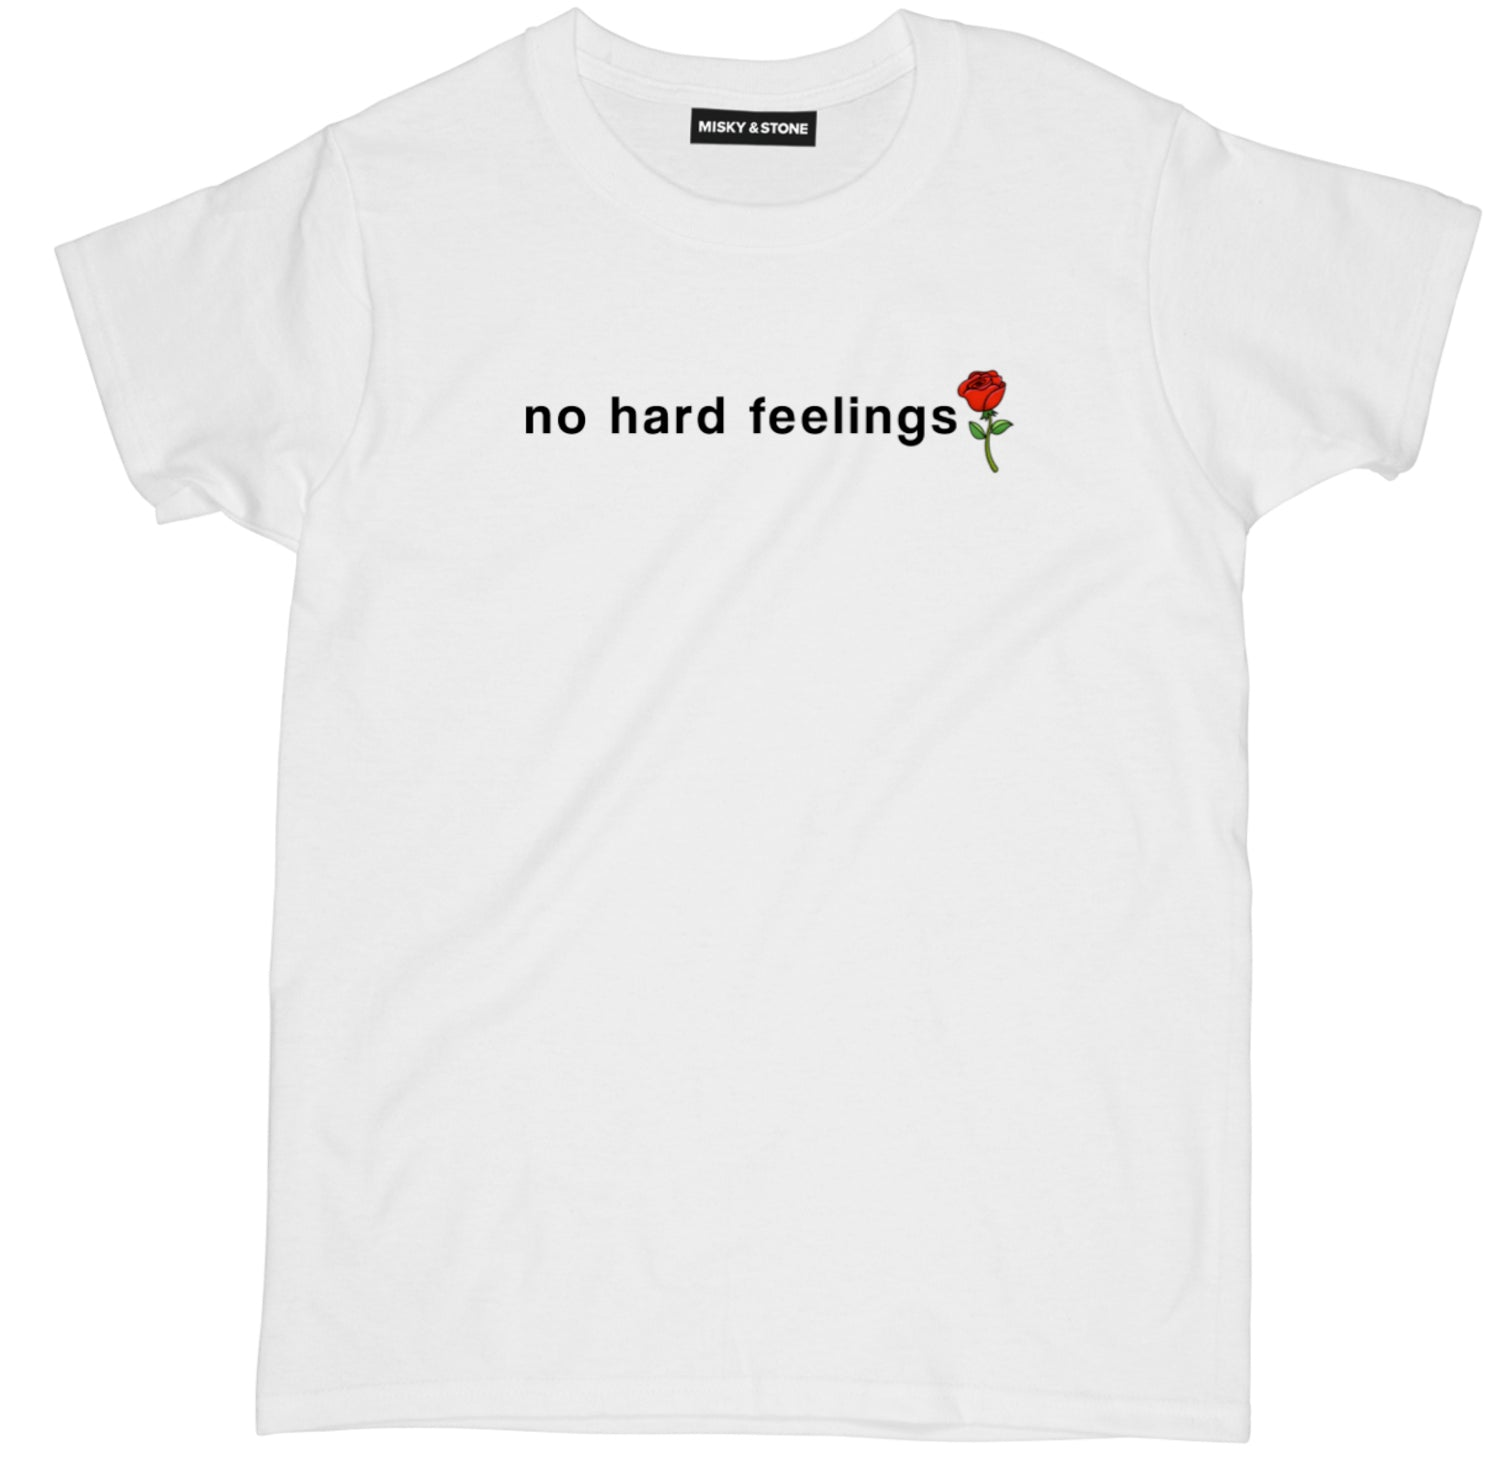 no hard feelings tee shirt, sassy tee shirts, sassy clothing, sassy merch, sassy apparel, funny sassy tees, sassy af shirt